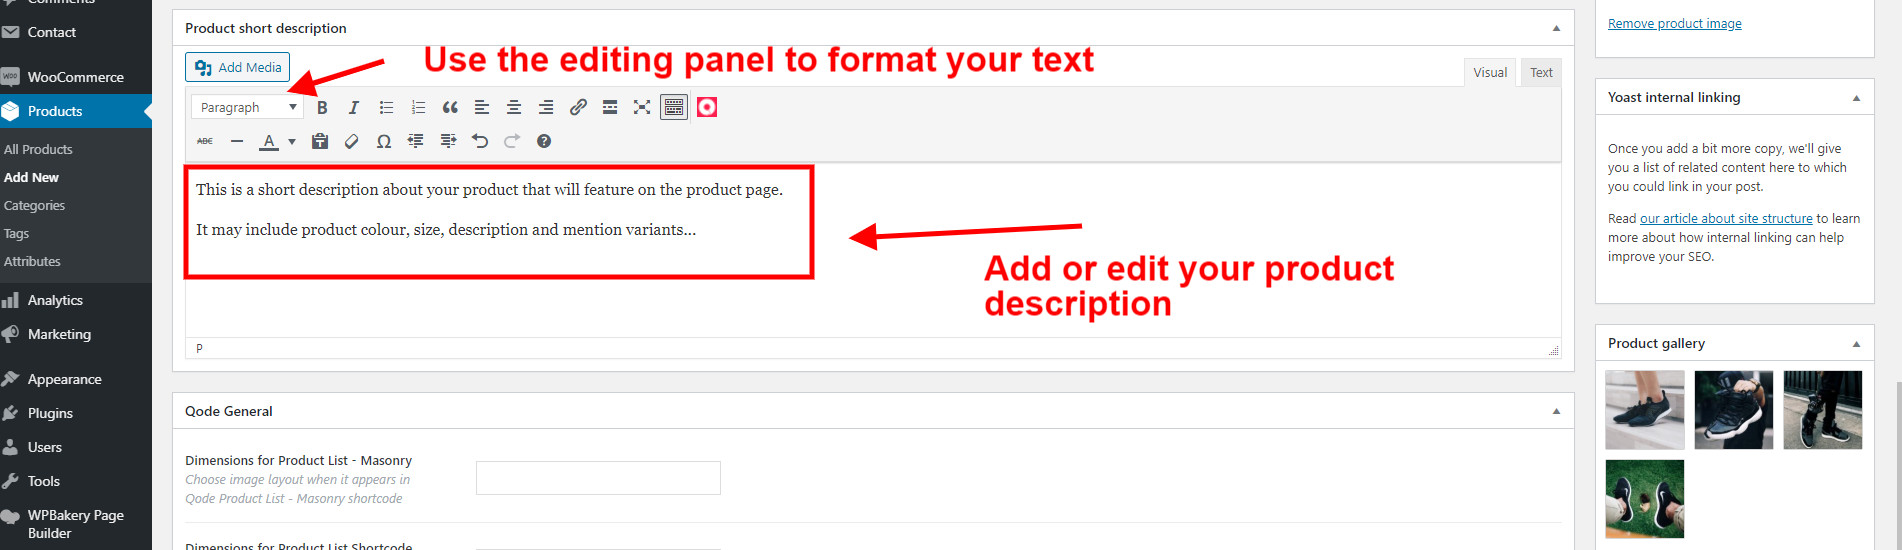 WooCommerce Guide Adding A Product Description